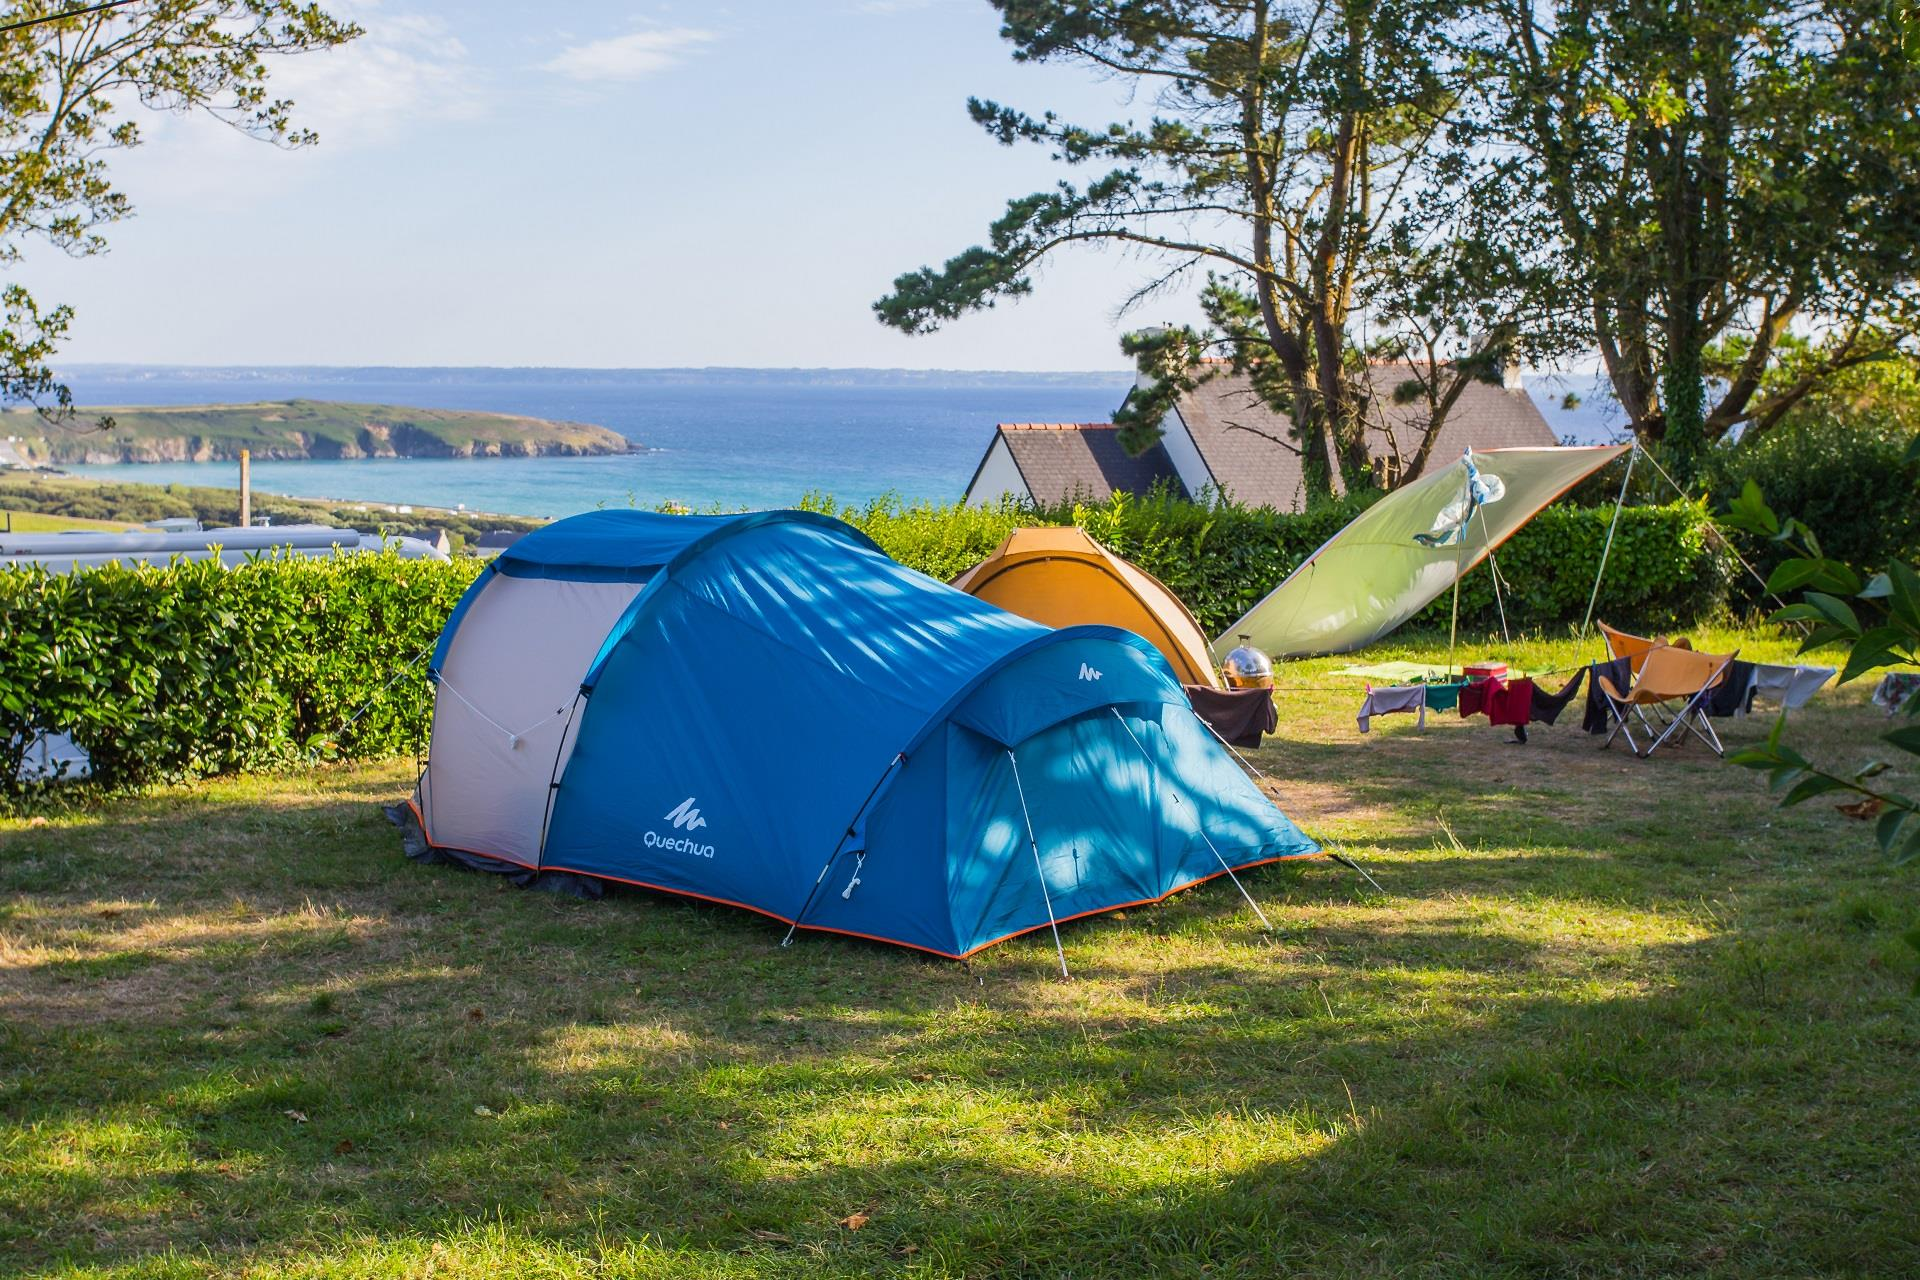 Emplacement - Emplacement Xxl +/- 175M² - Camping Sites et Paysages Le Panoramic